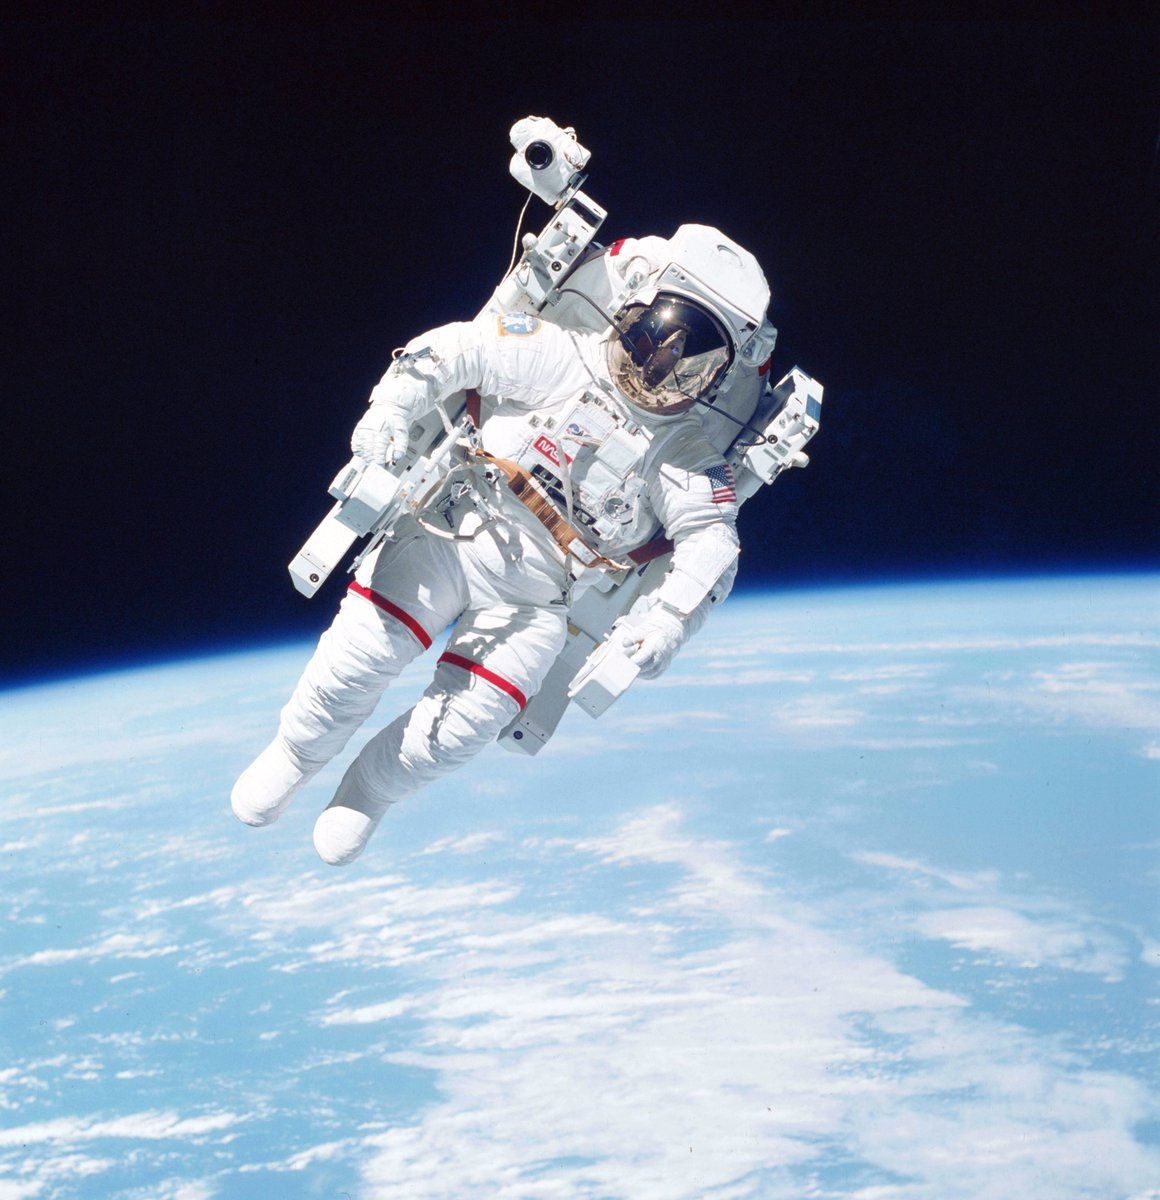 astronaut untethered space walk - photo #4